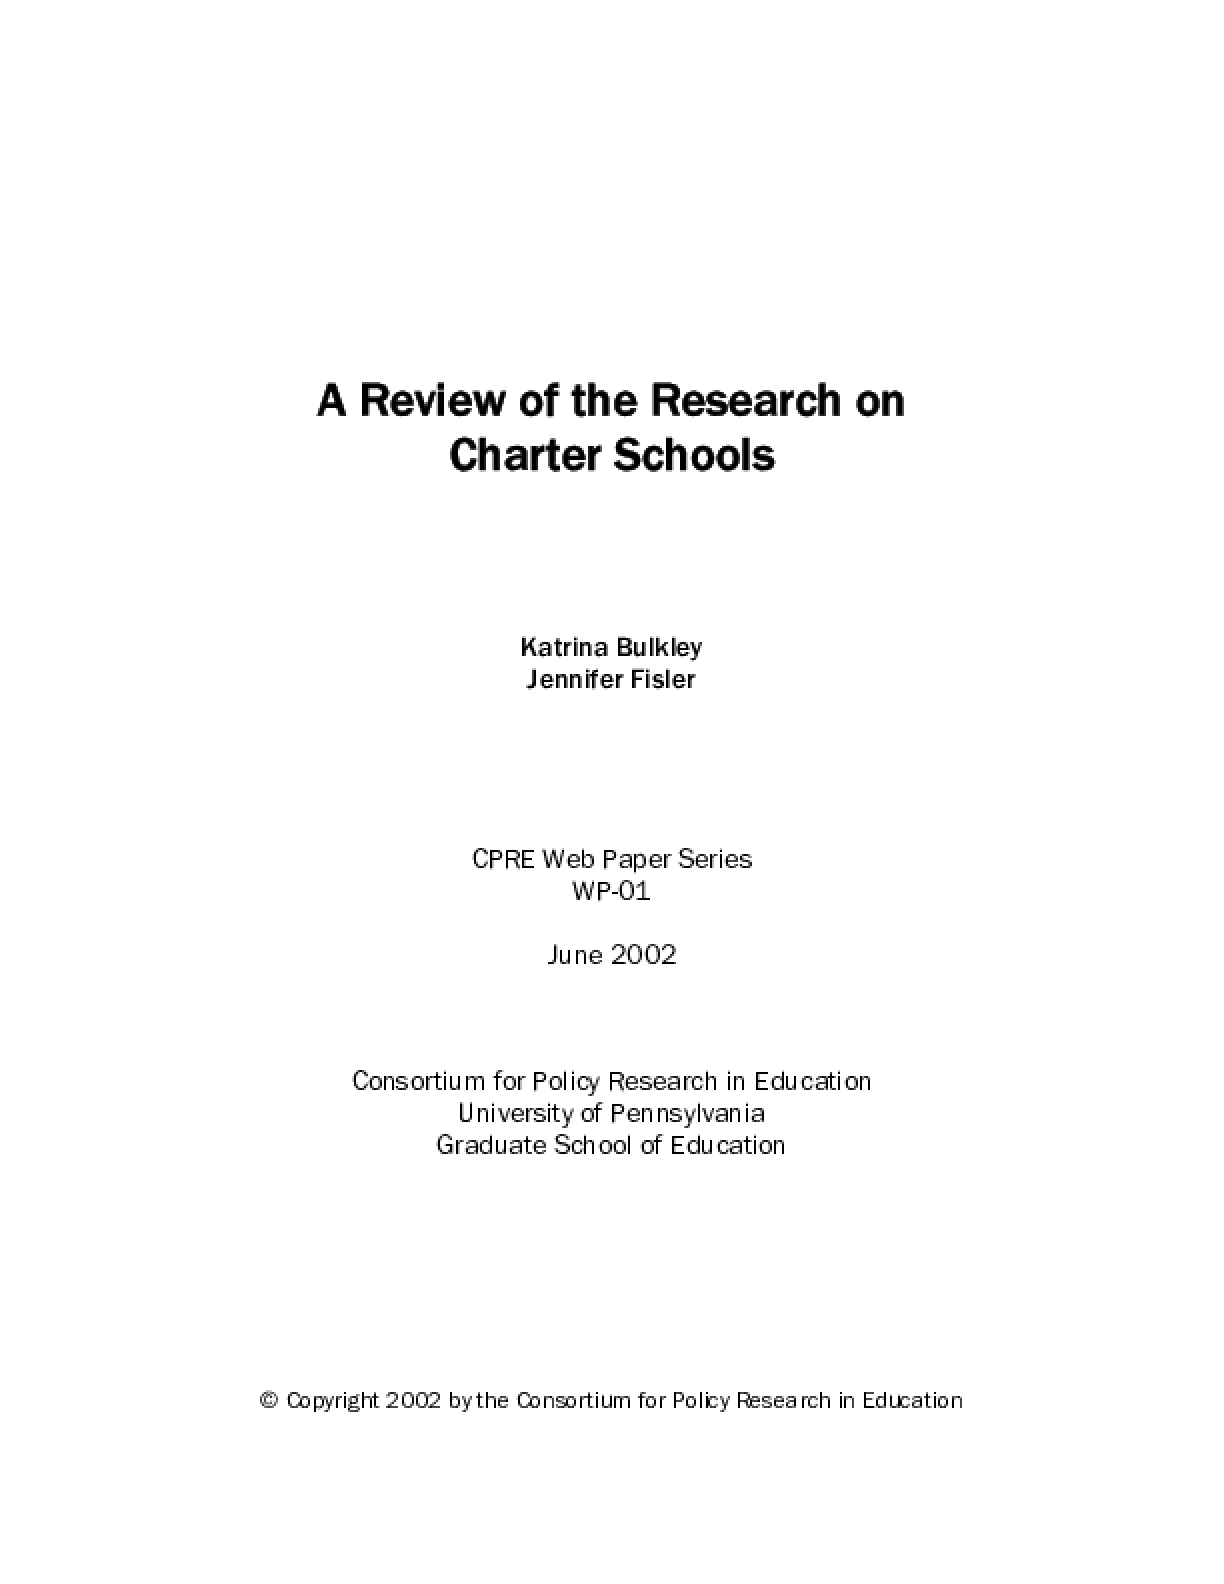 A Review of the Research on Charter Schools